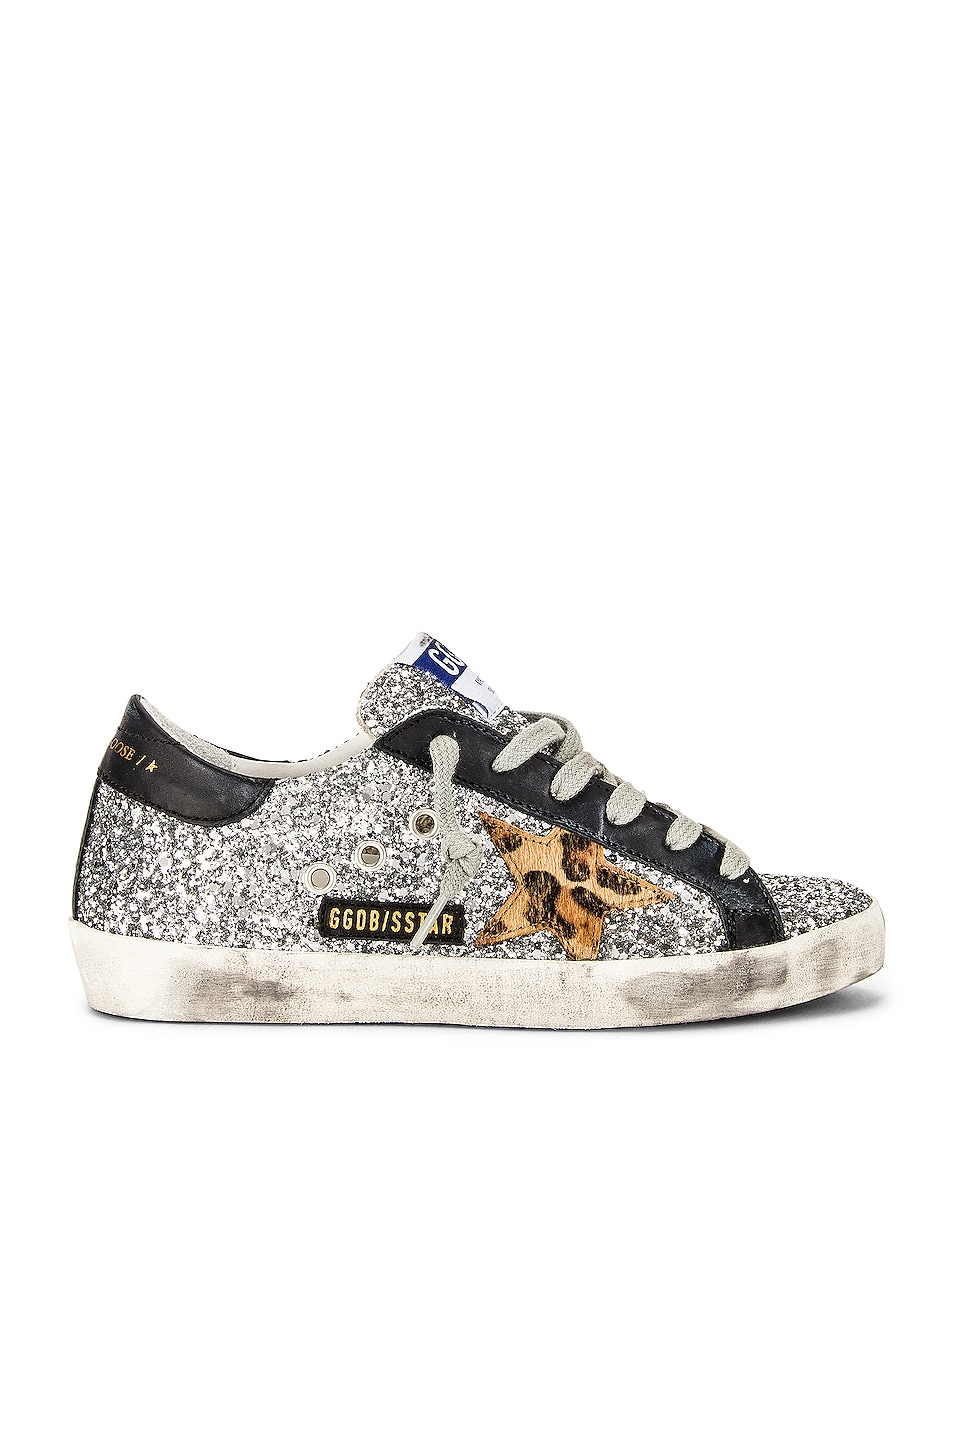 Image 1 of Golden Goose Superstar Sneaker in Silver, Beige Brown Leopard & Black